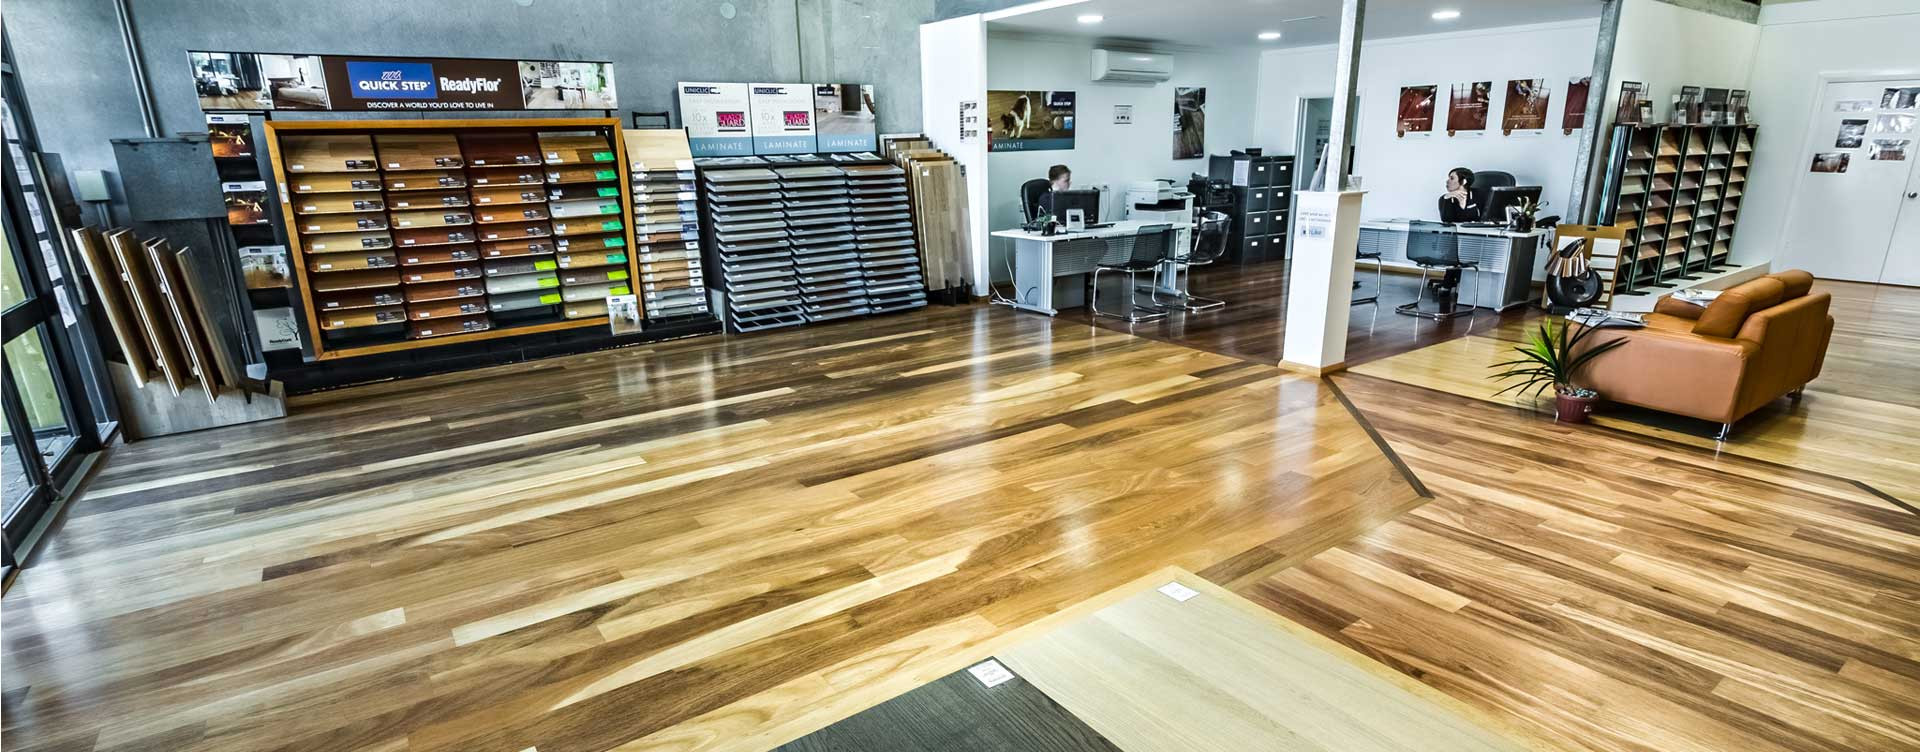 top quality hardwood flooring store of timber flooring perth coastal flooring wa quality wooden throughout thats why they call us the home of fine wood floors